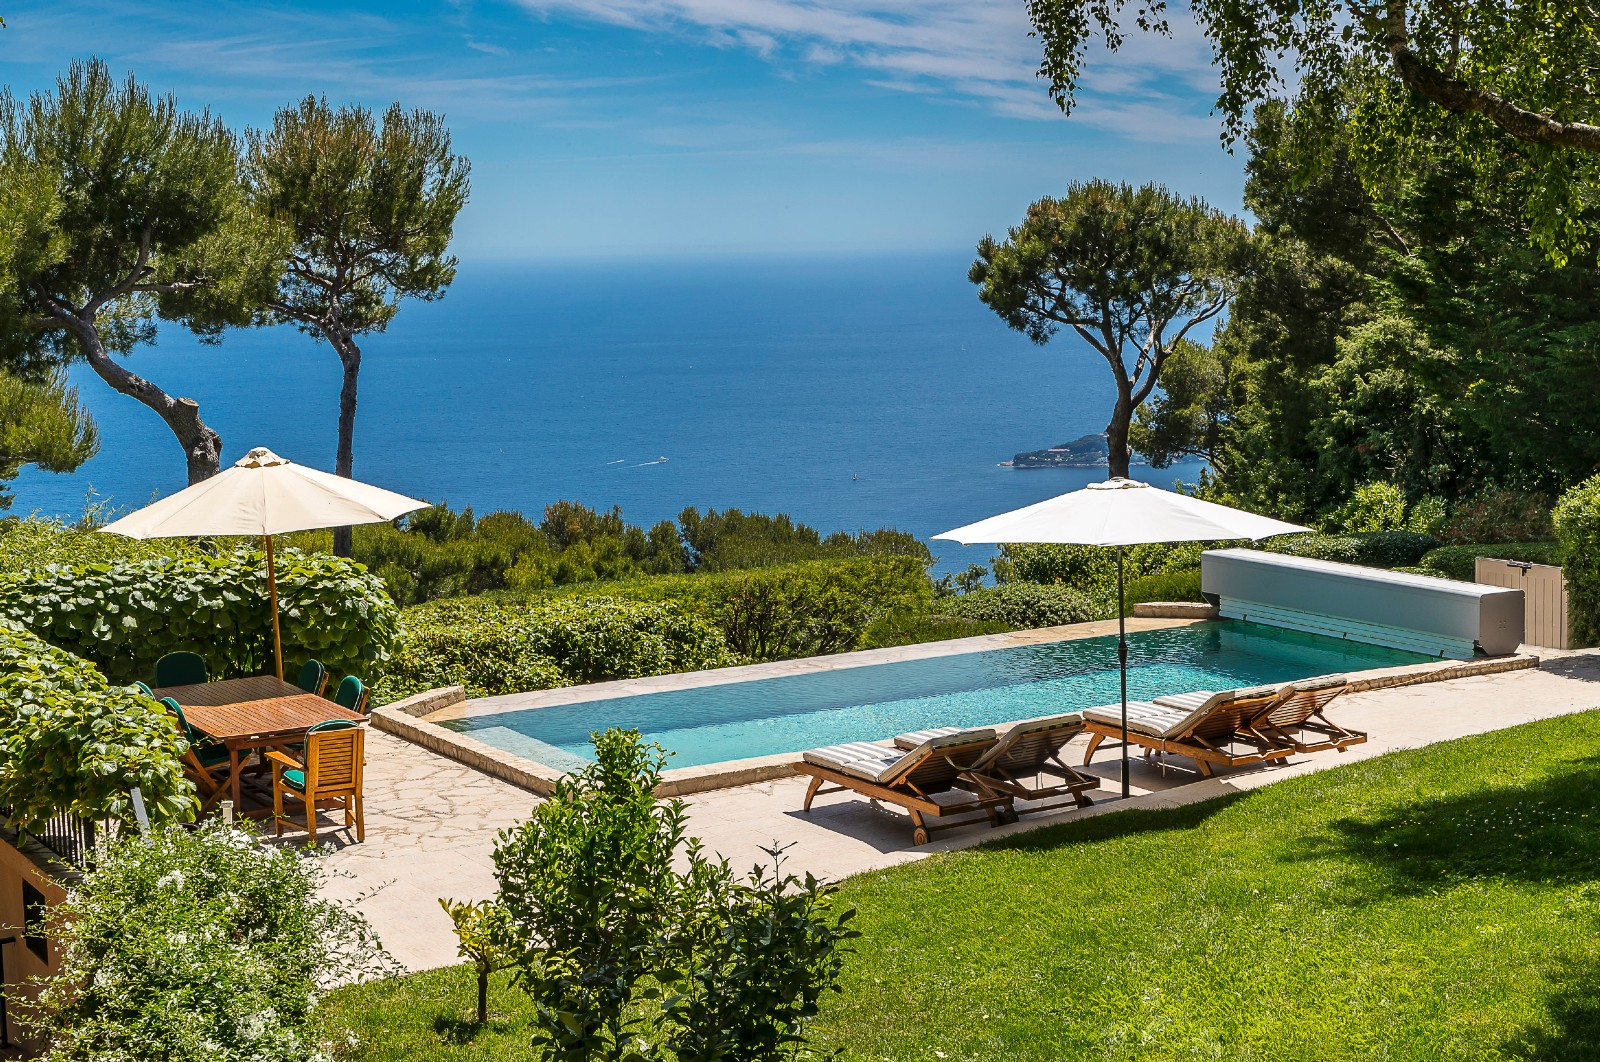 EZE - BEAUTIFUL PROPERTY FOR SALE